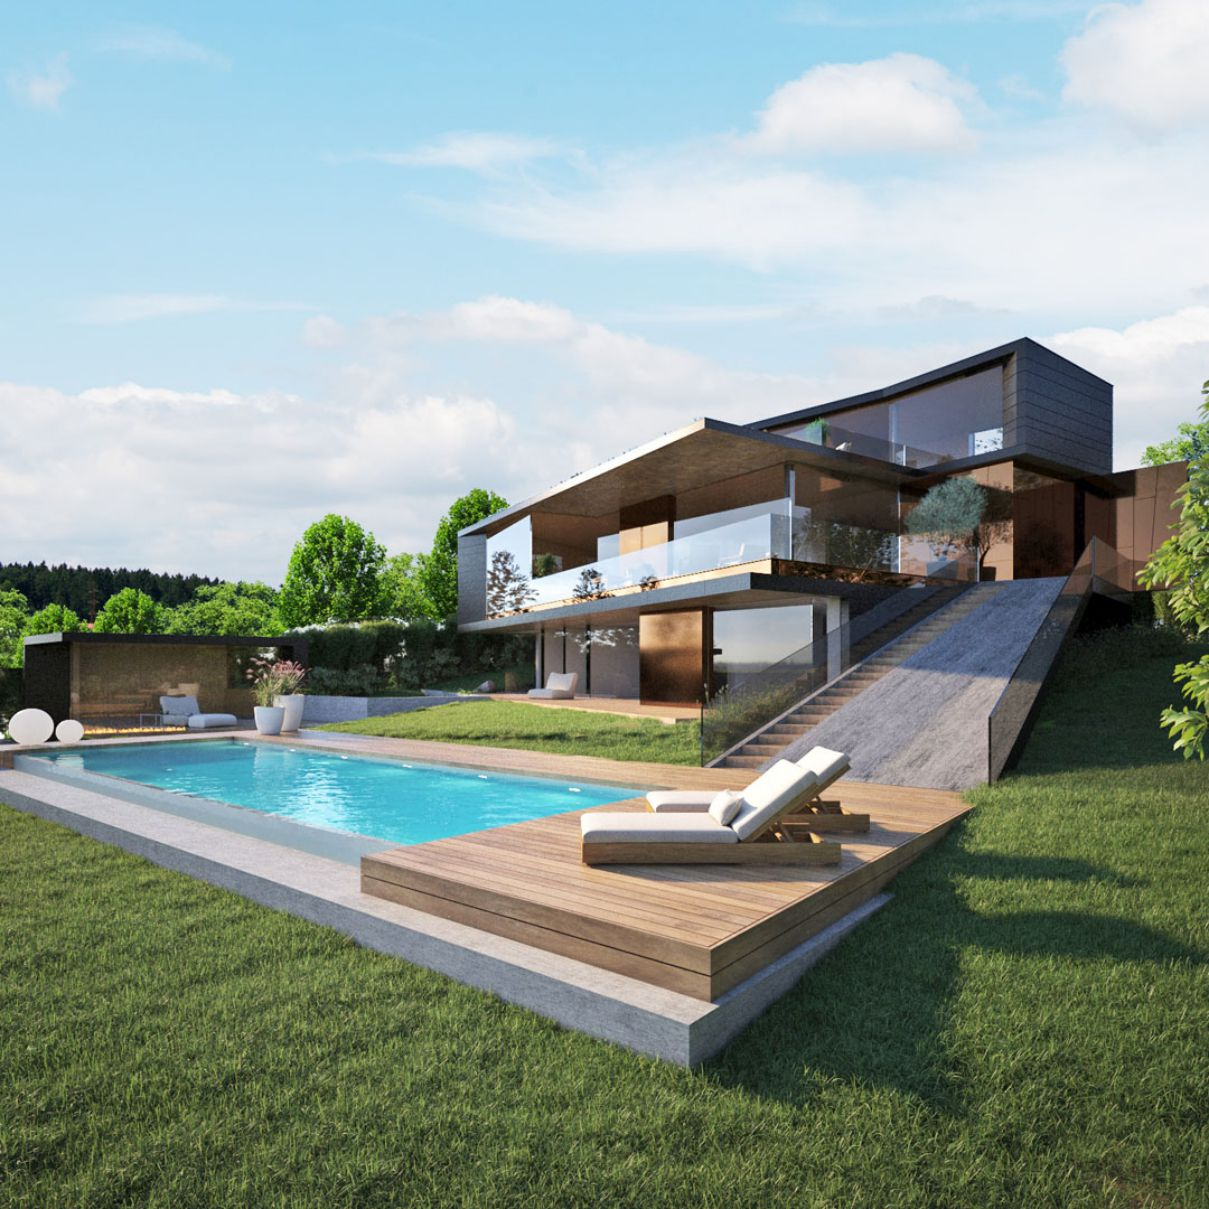 Budapest DZS Villa Design Concept by Toth Project